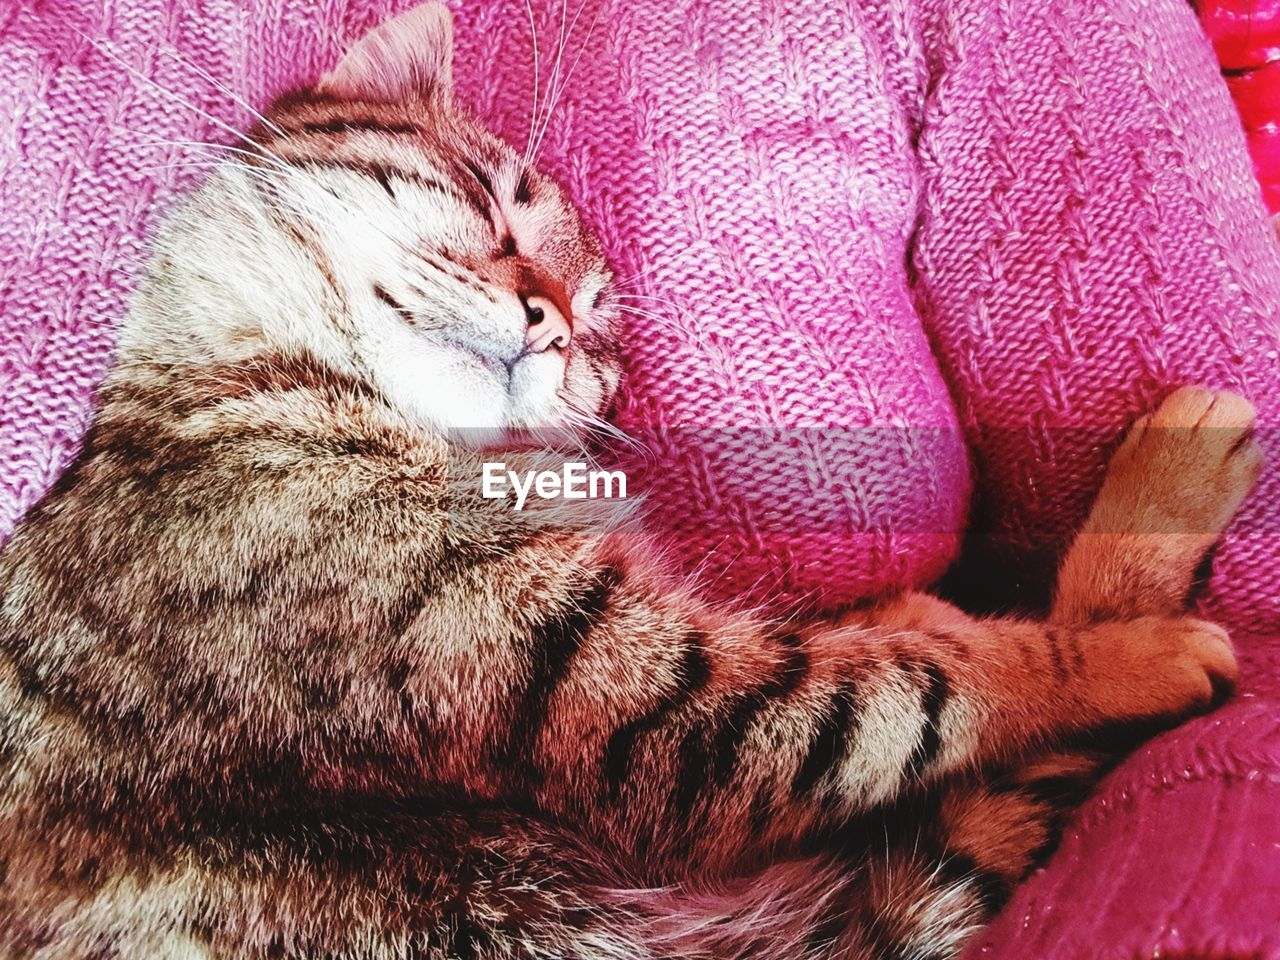 domestic cat, domestic animals, pets, one animal, animal themes, mammal, indoors, feline, sleeping, no people, relaxation, close-up, day